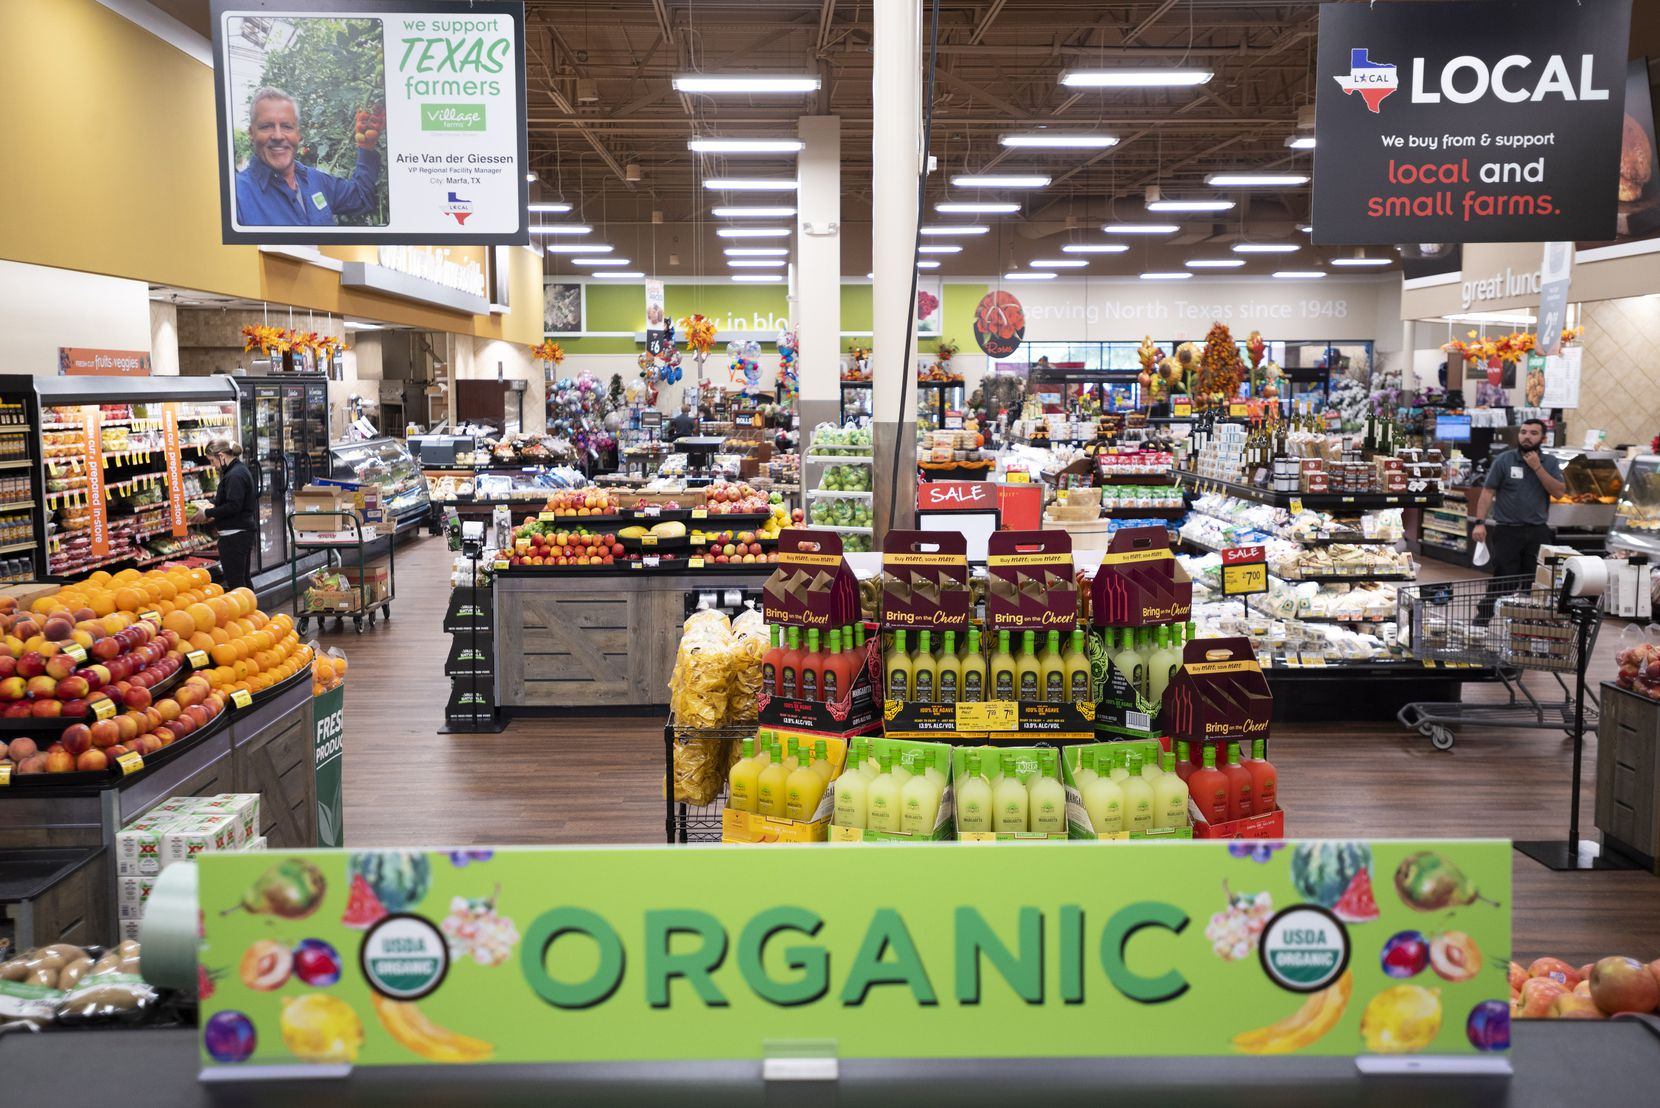 The produce section inside the Tom Thumb supermarket at Custer Parkway in Richardson.